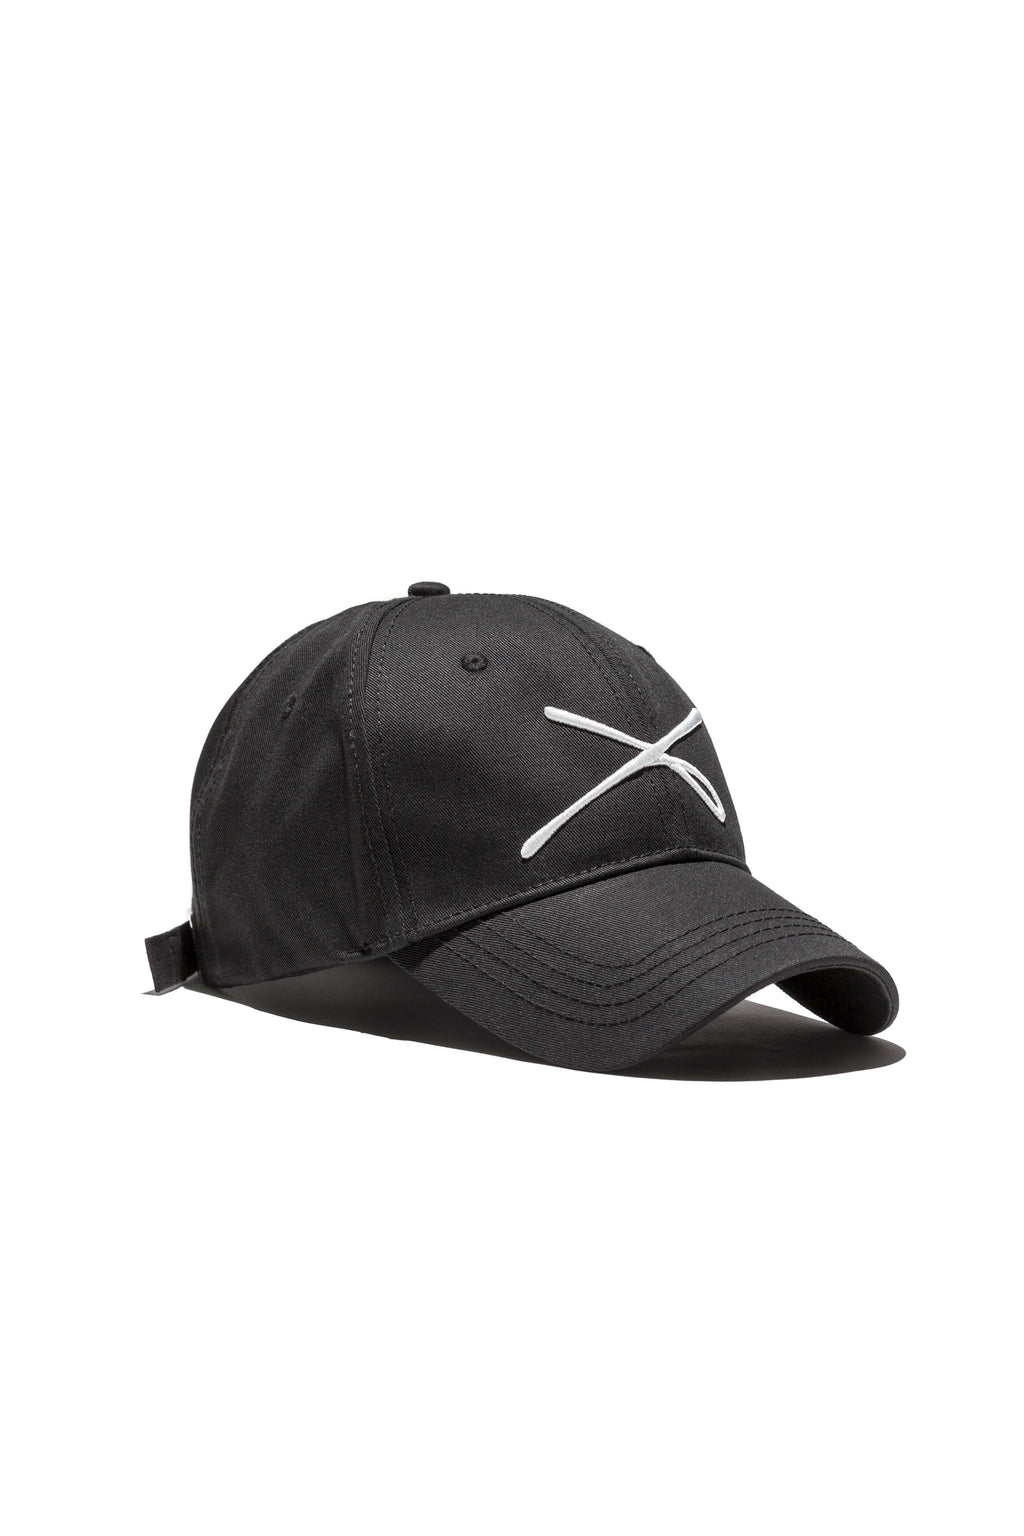 THE X HAT